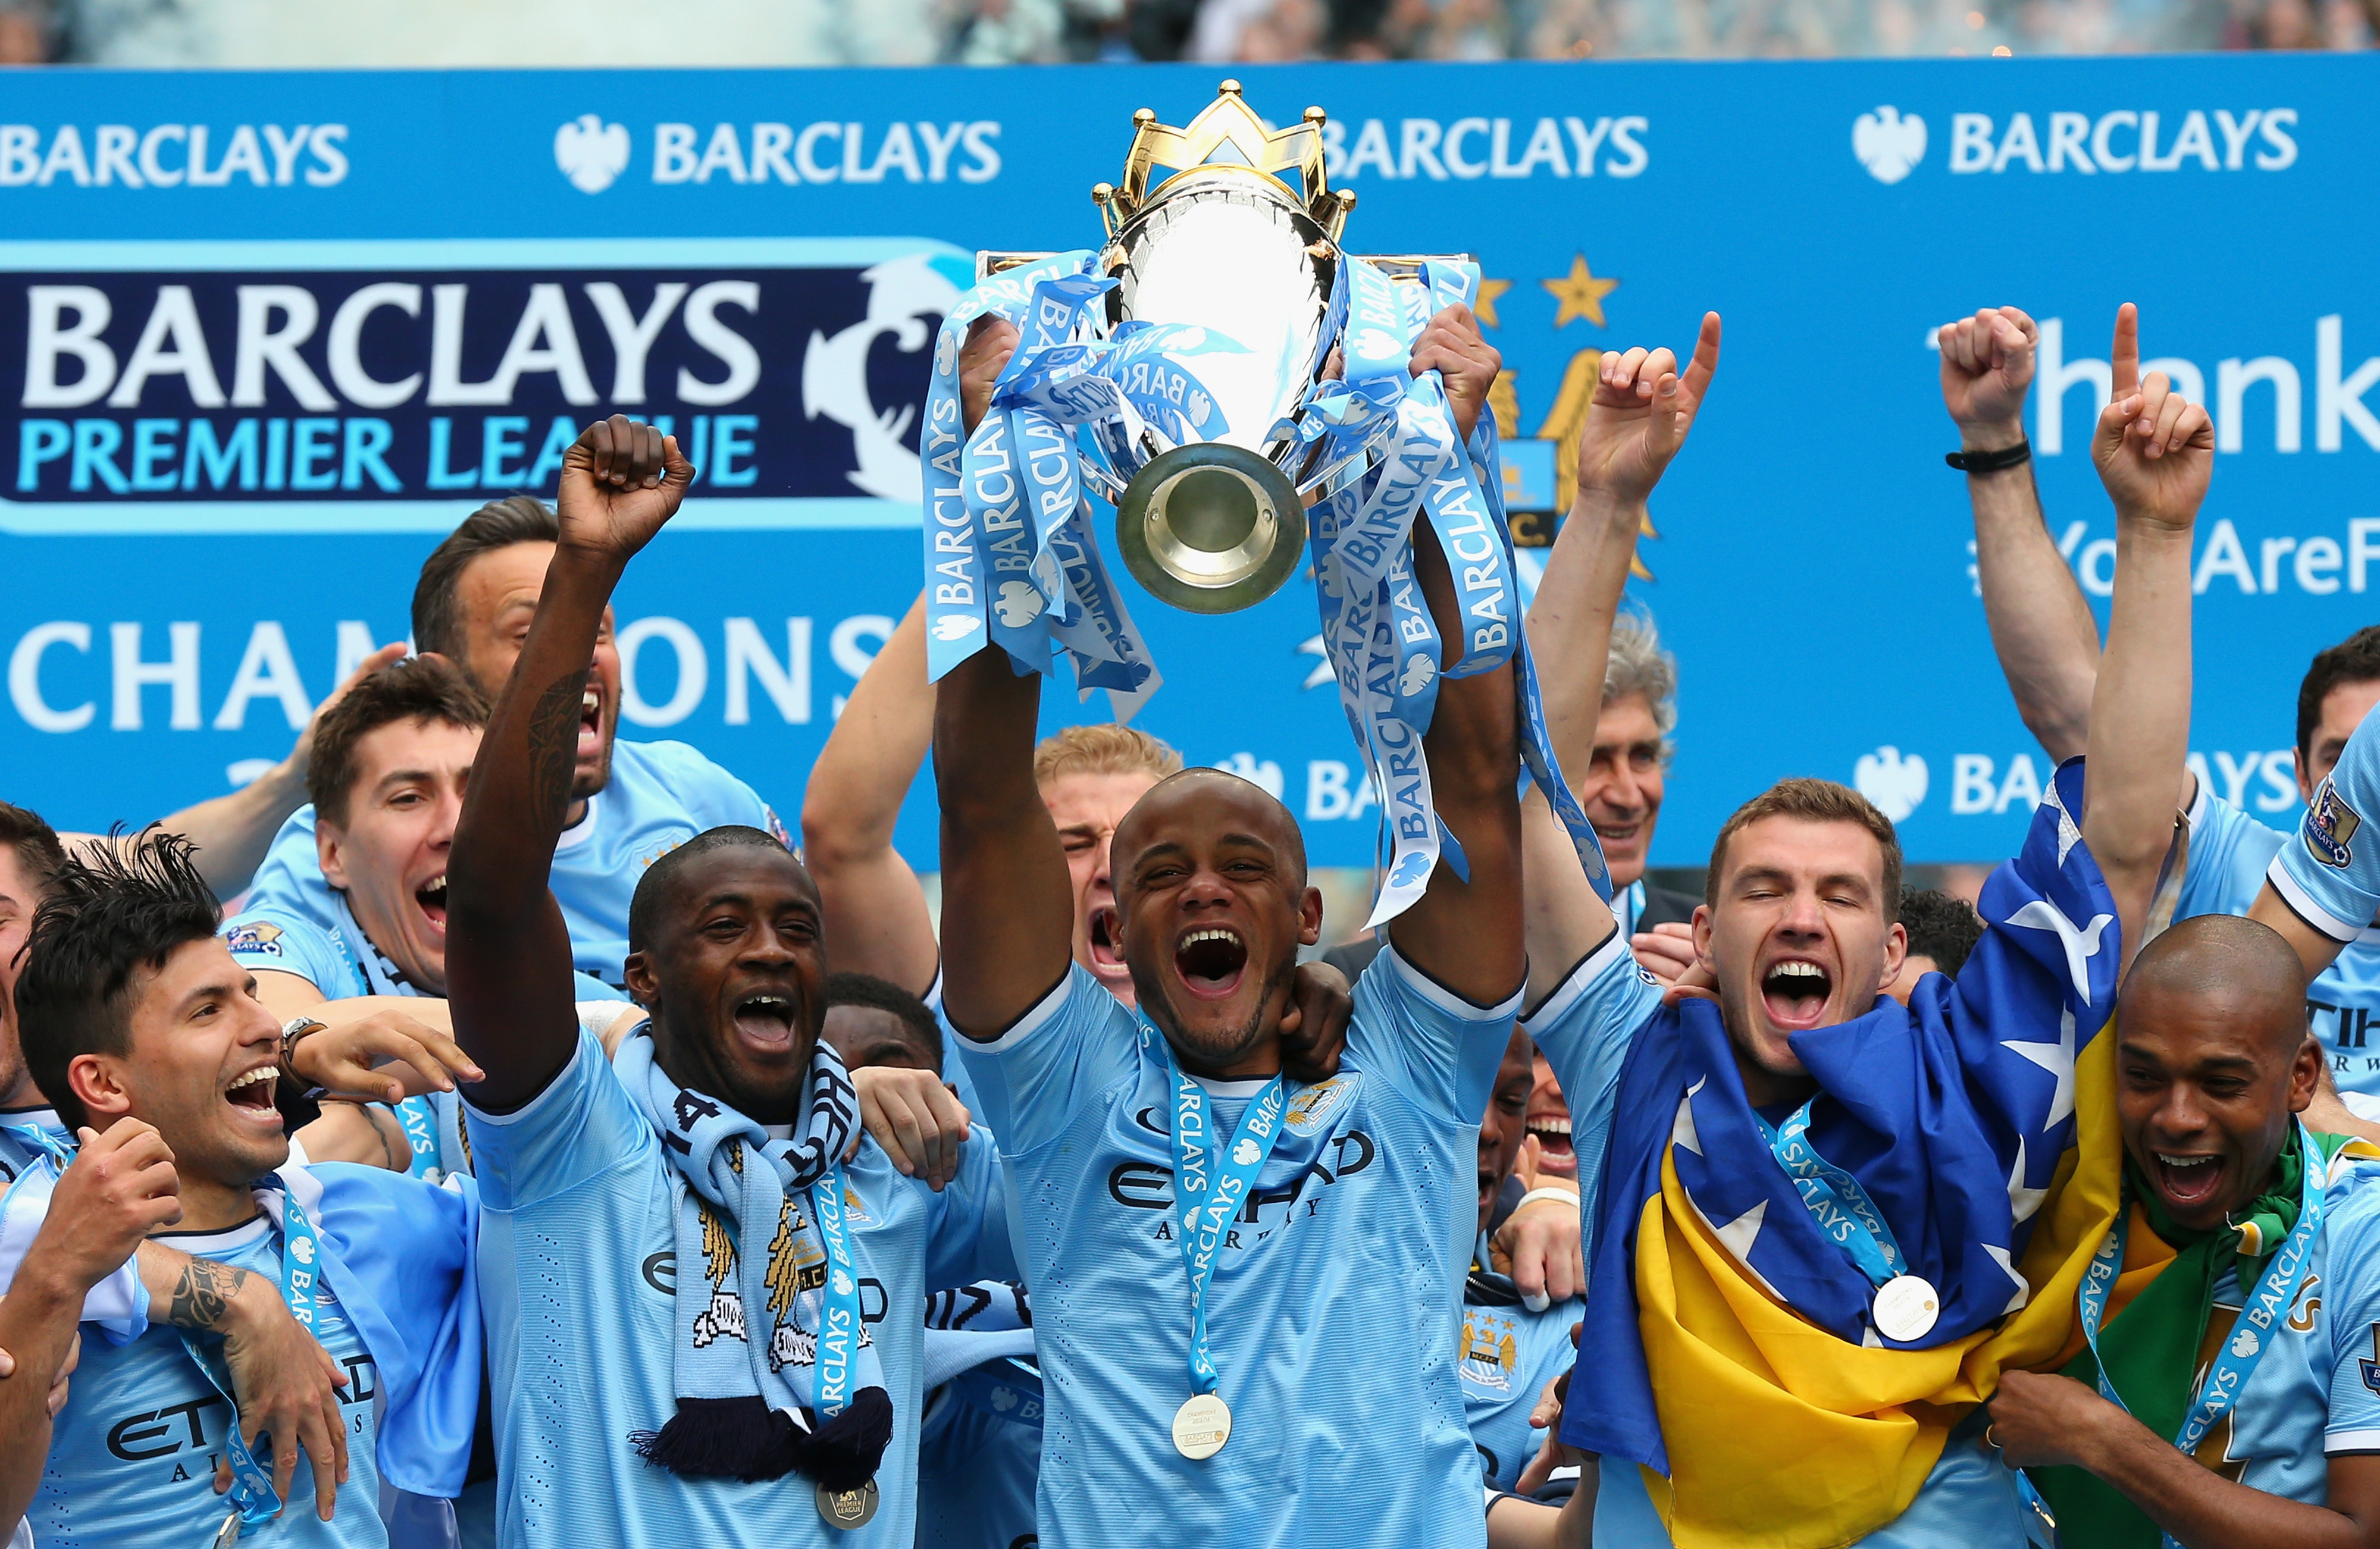 Man City will hope for a repeat of last year's title triumph